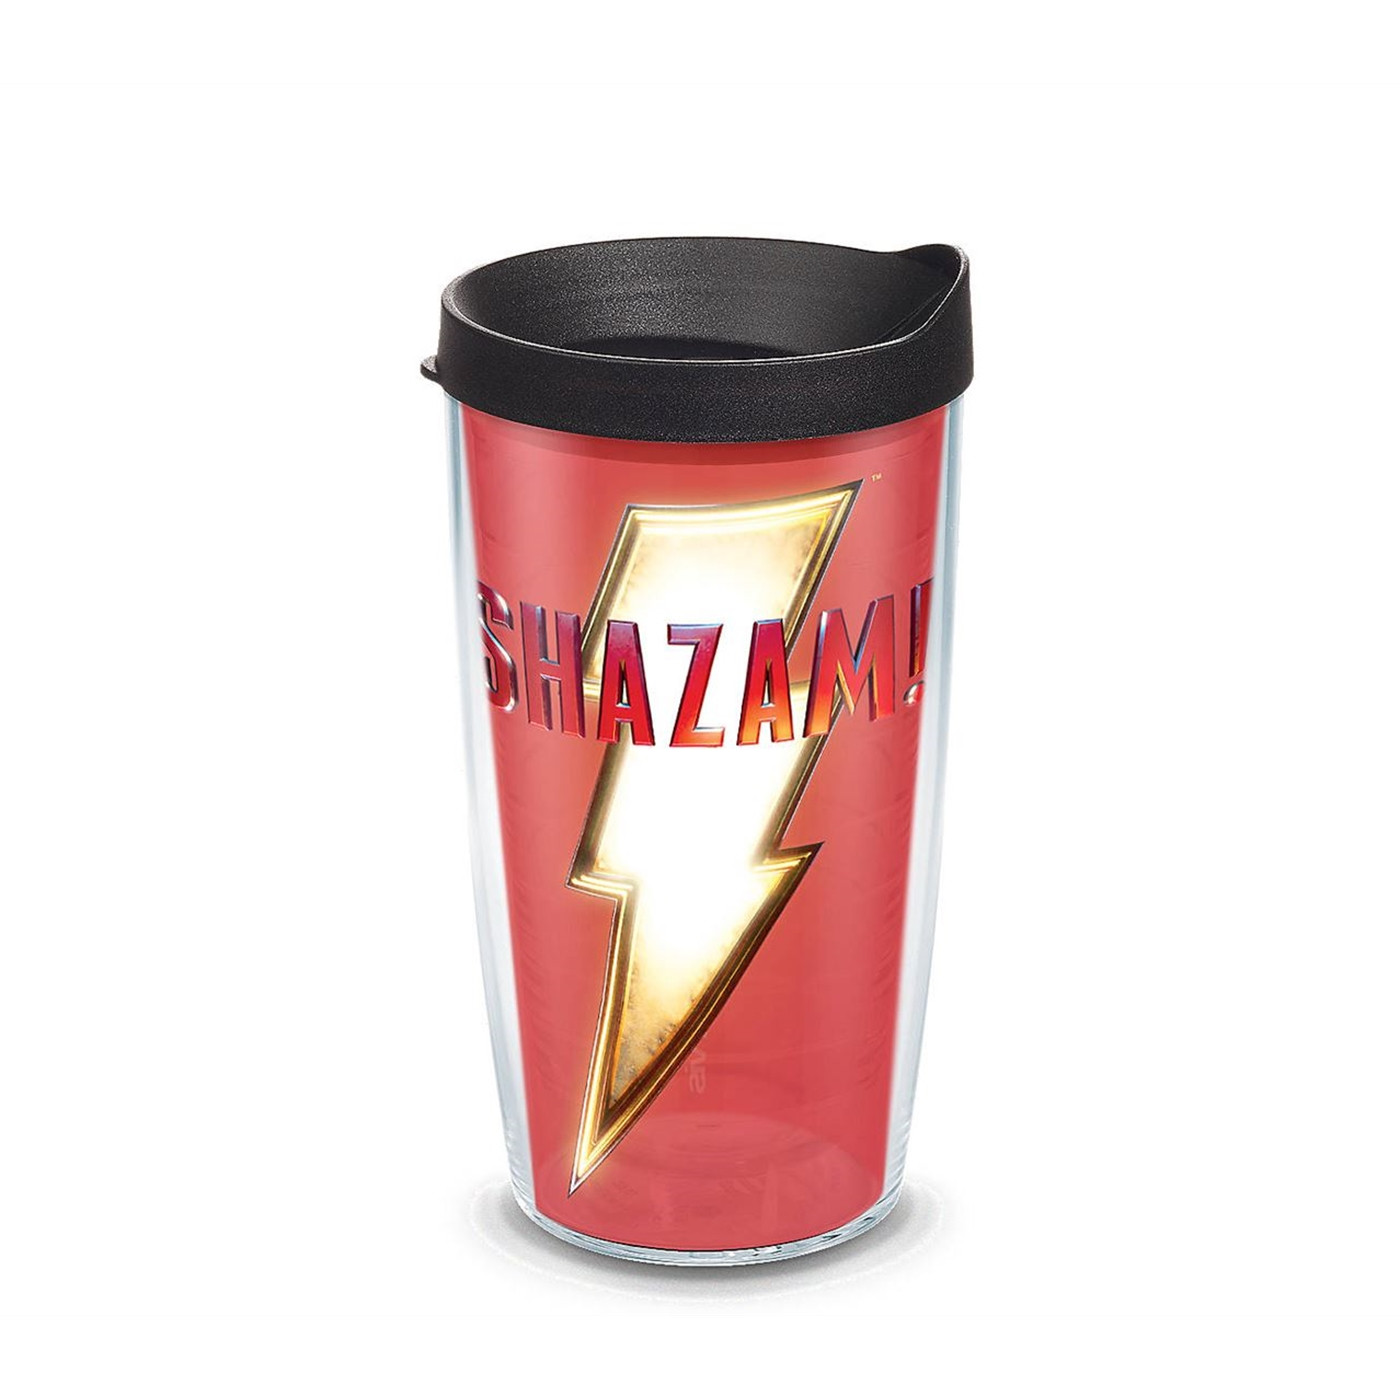 Shazam! Crest Wrap With Travel Lid 16 oz Tervis® Tumbler